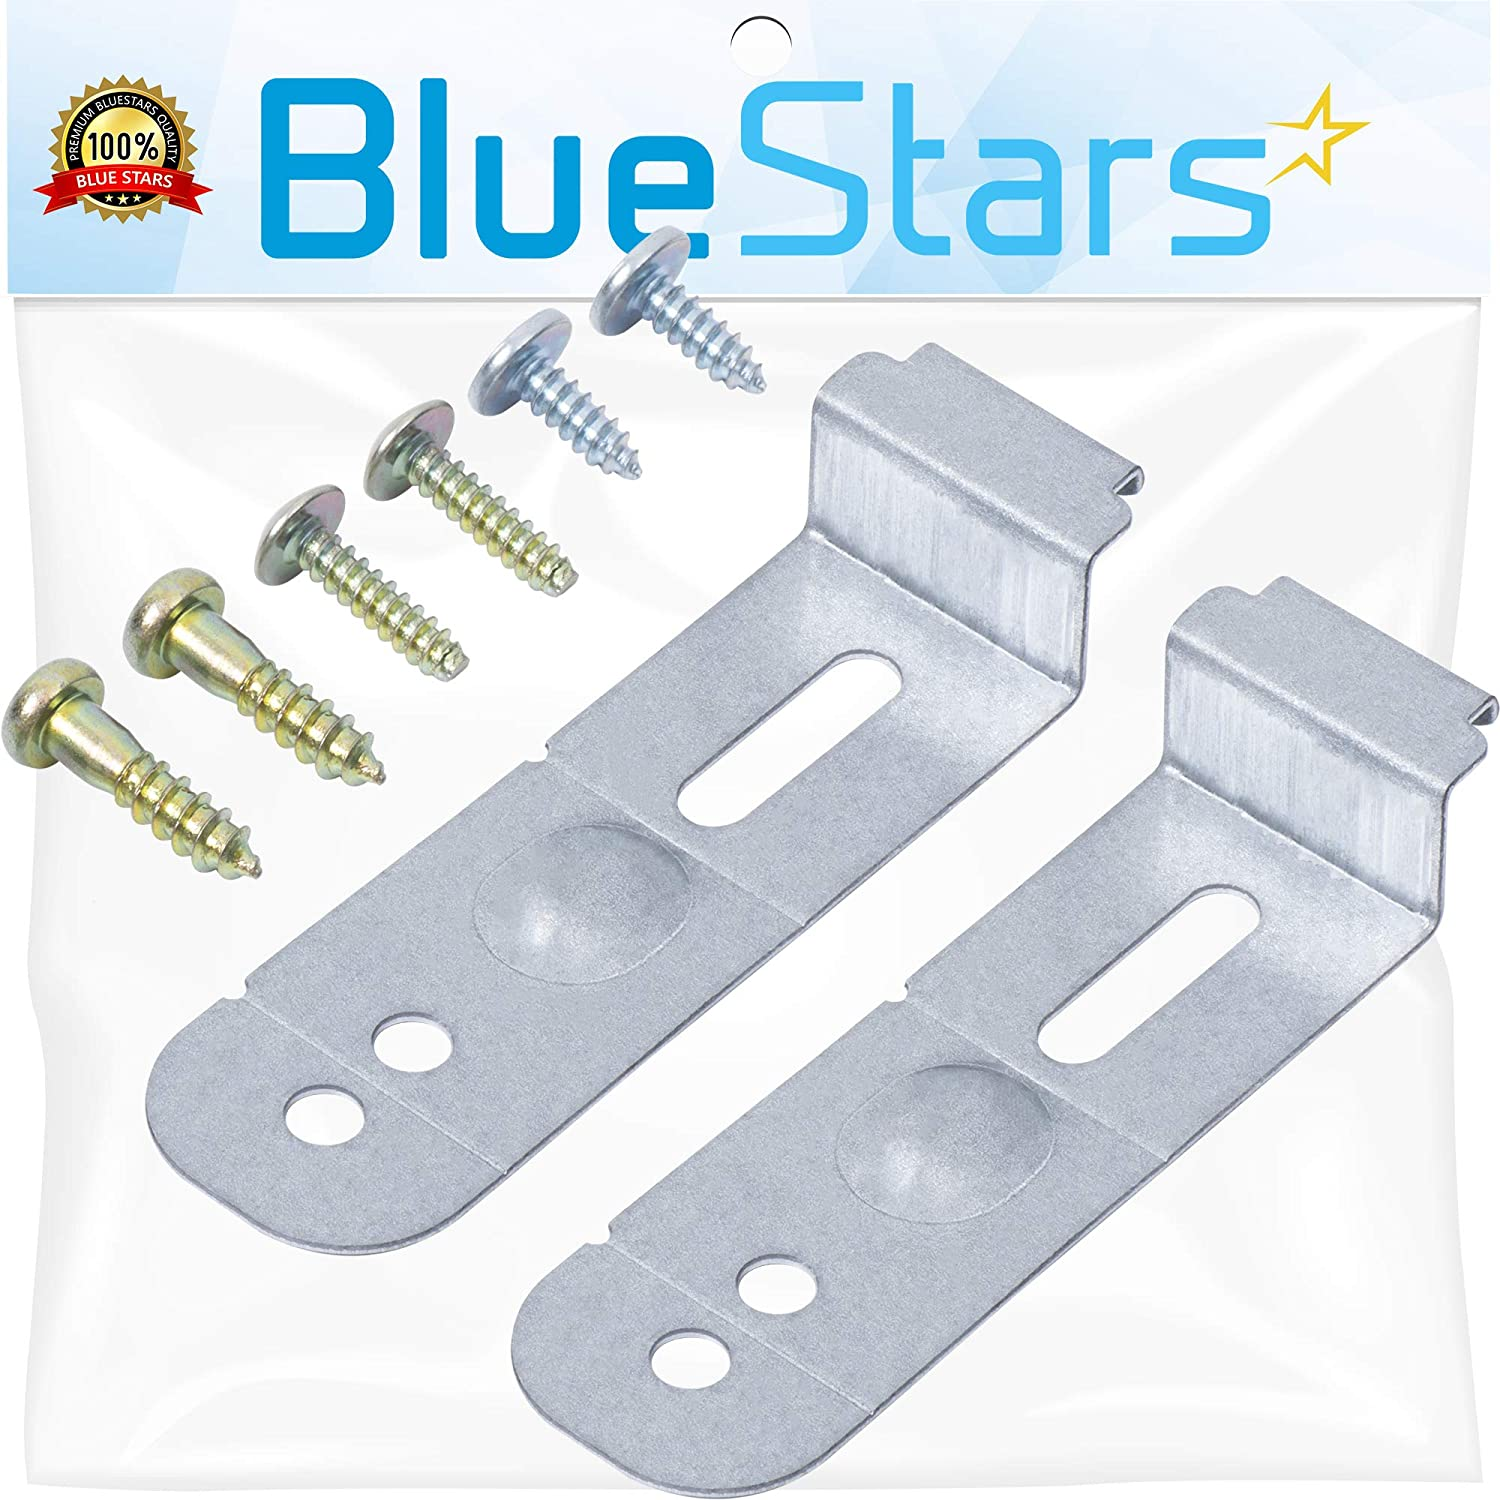 Ultra Durable DD94-01002A Dishwasher Assembly-Install Kit Replacement Part by Blue Stars - Exact Fit for Samsung Dishwashers - Replaces 2077601 AP4450818 PS4222710